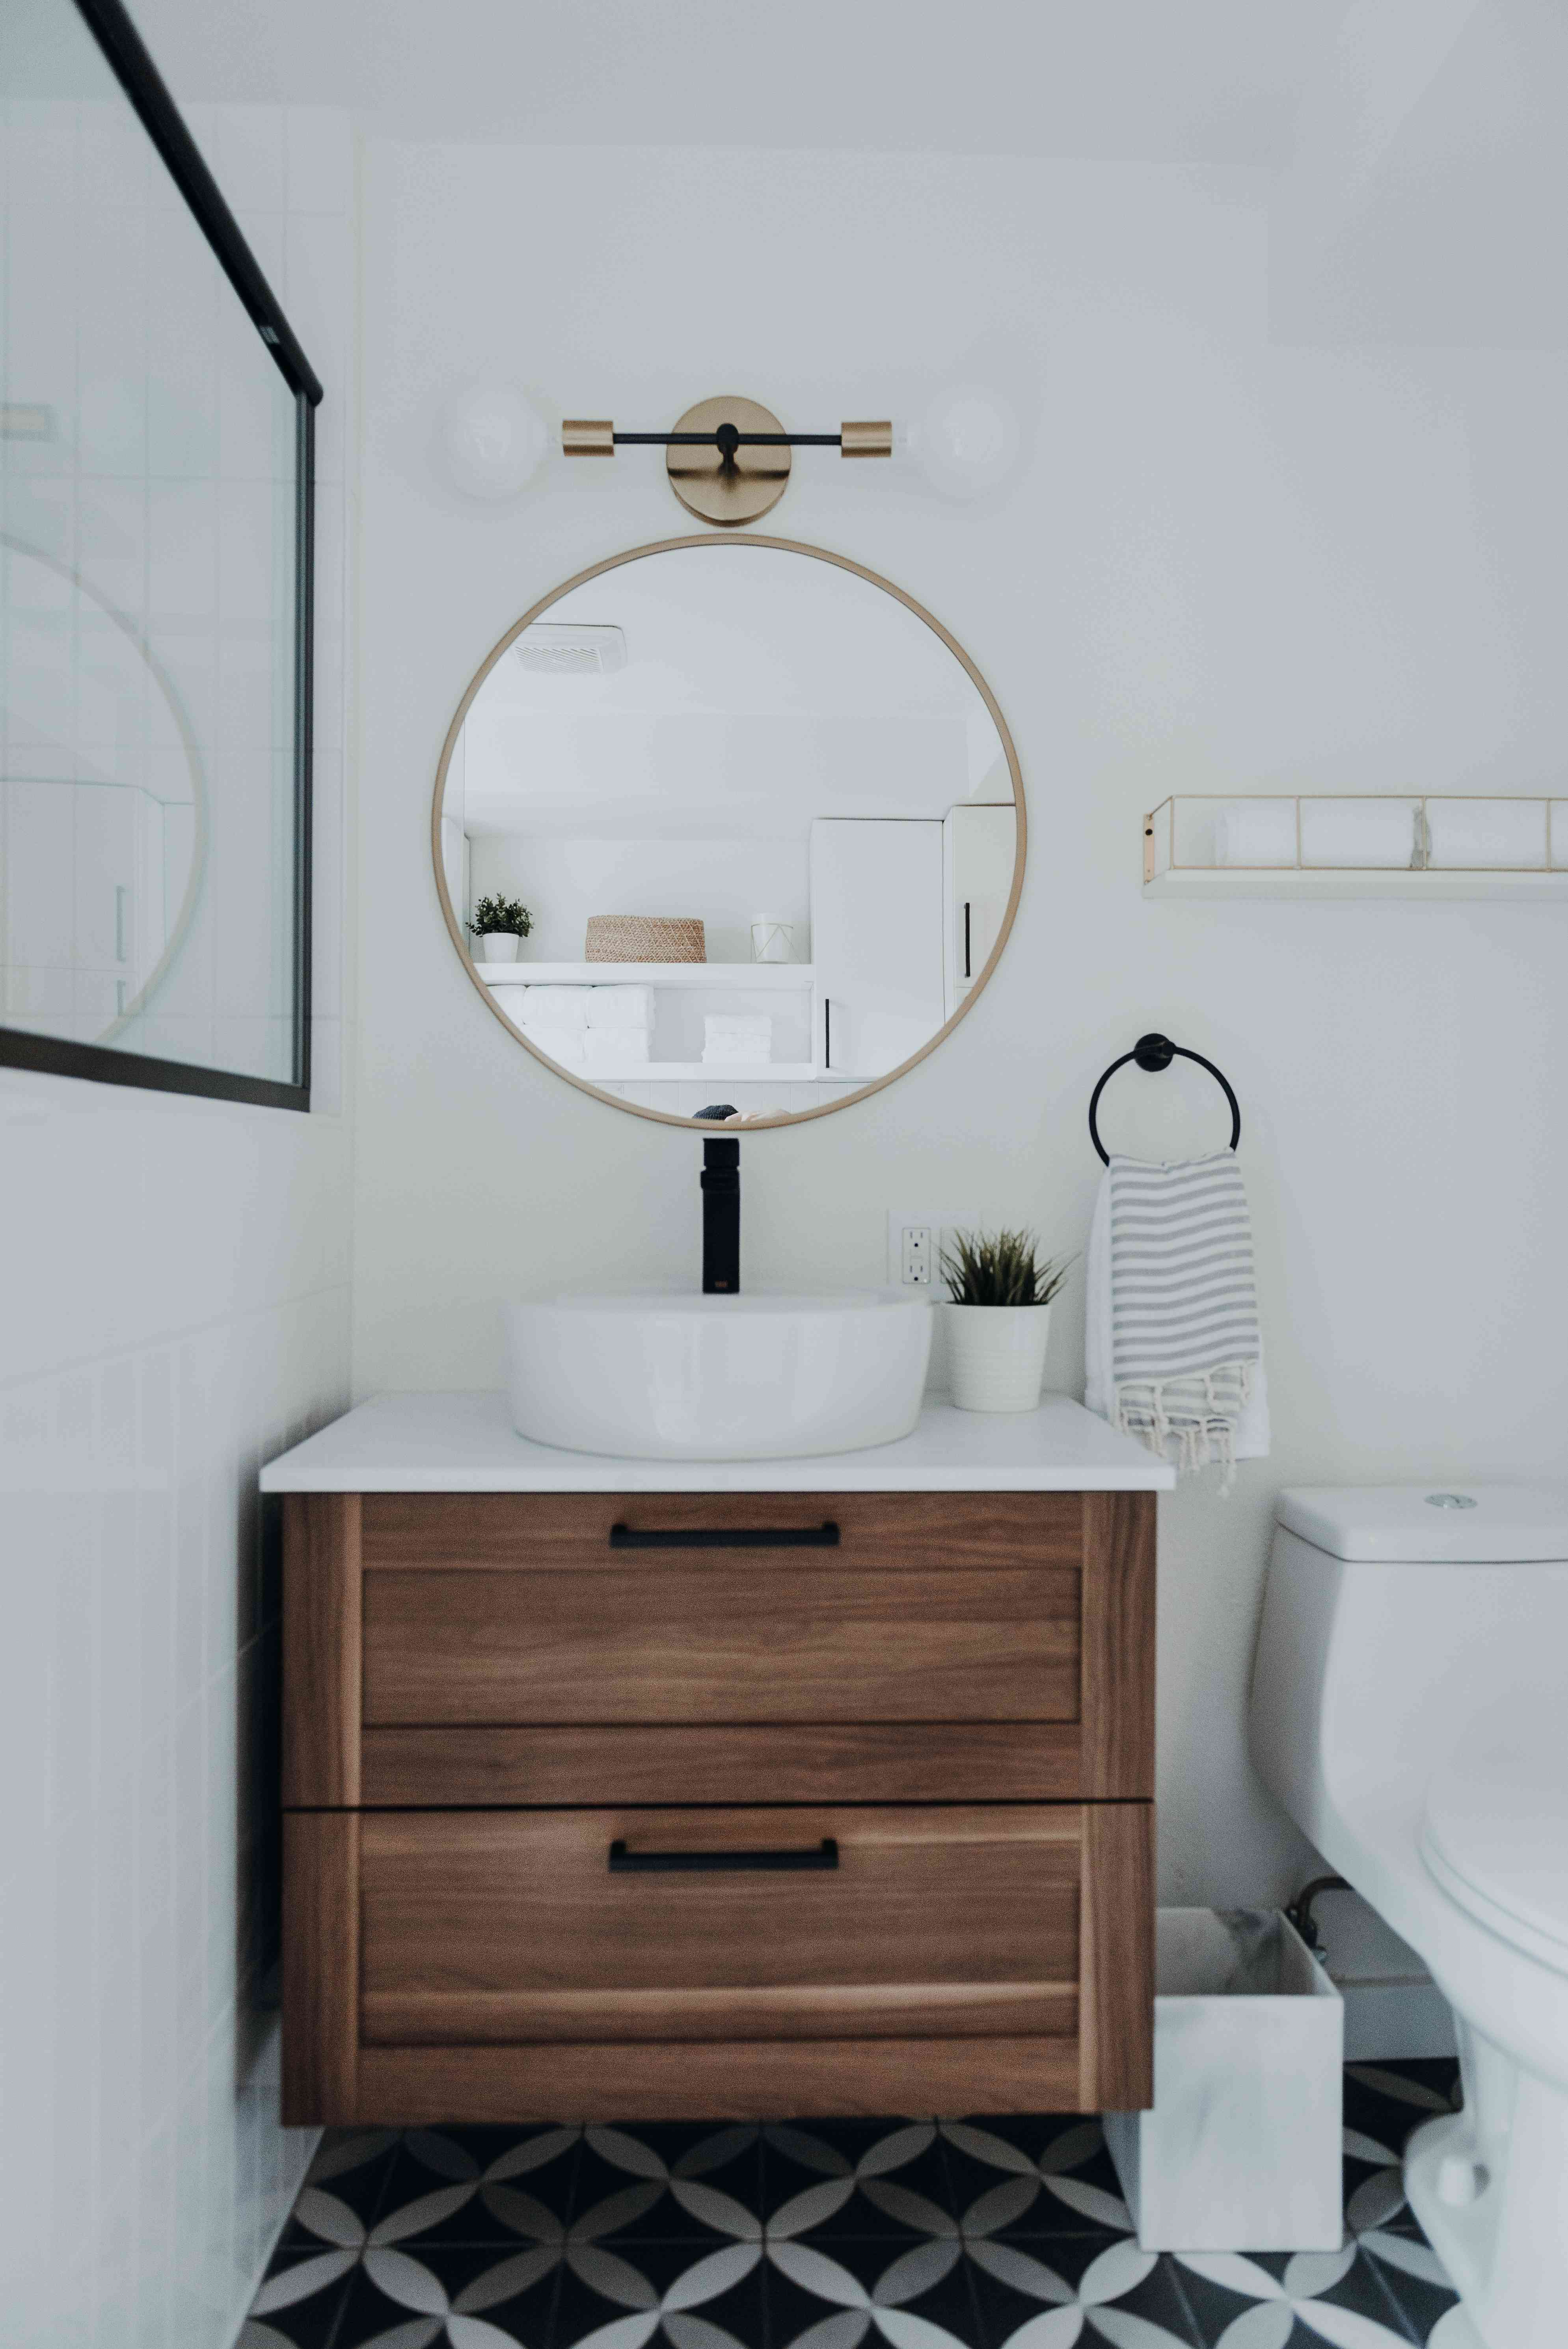 bathroom with tiled floor and gold mirror